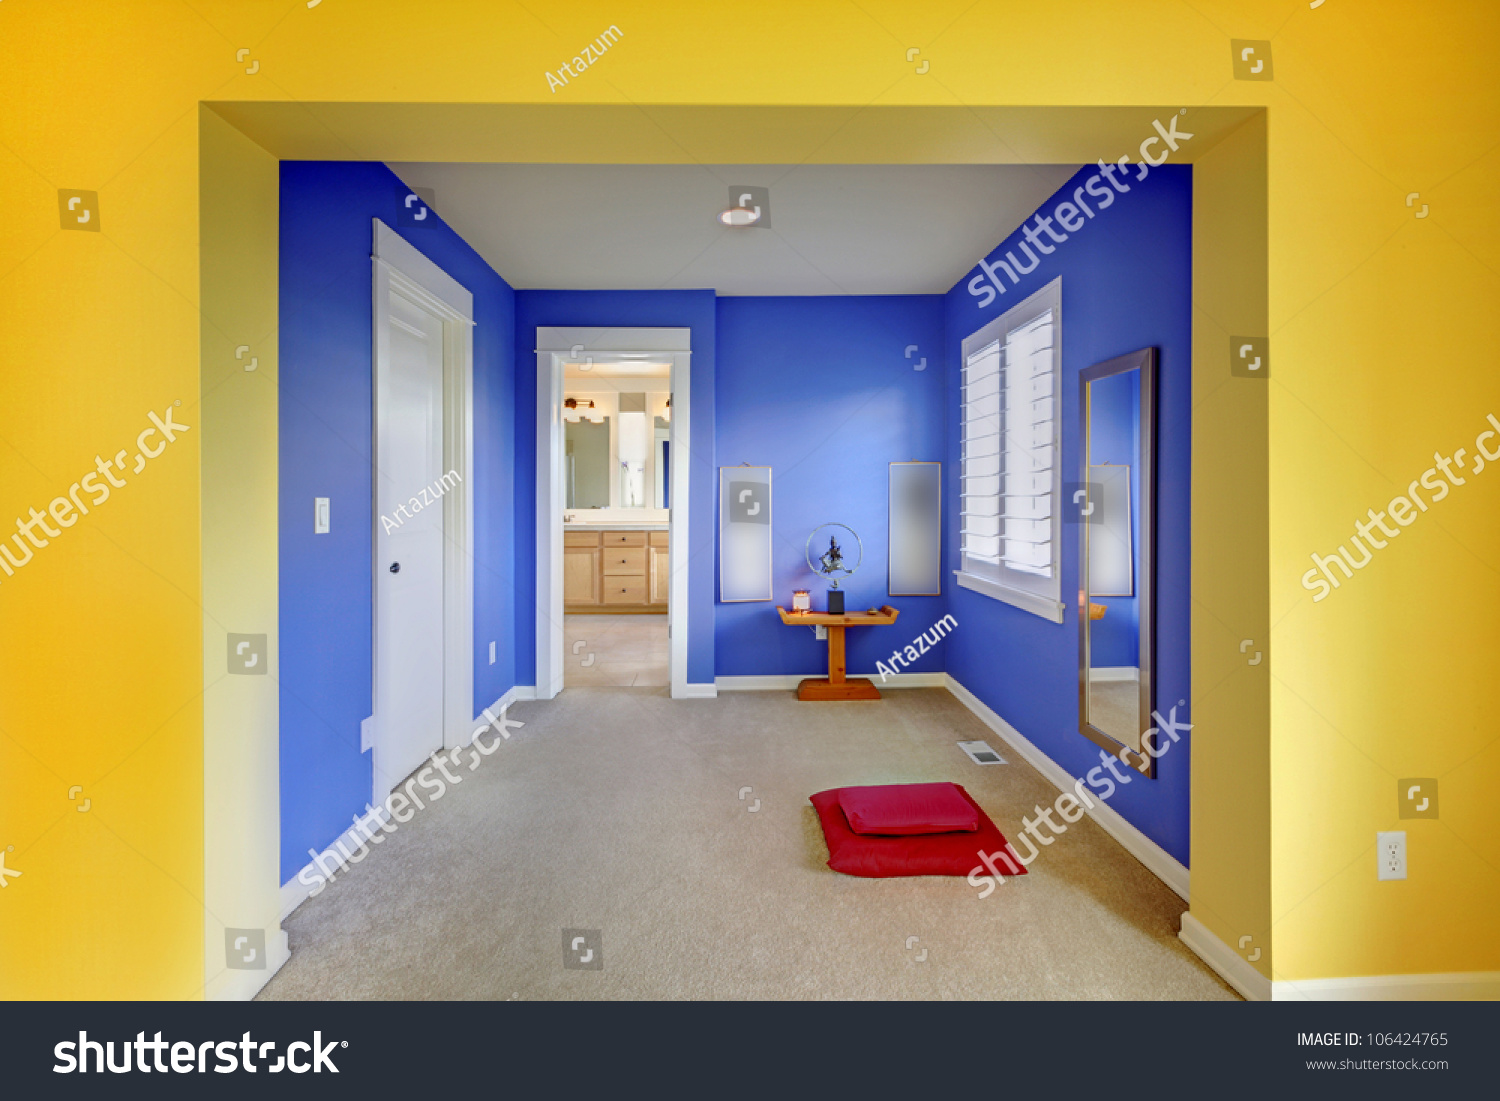 blue and yellow home meditation area between bathroom and bedroom stock photo 106424765. Black Bedroom Furniture Sets. Home Design Ideas